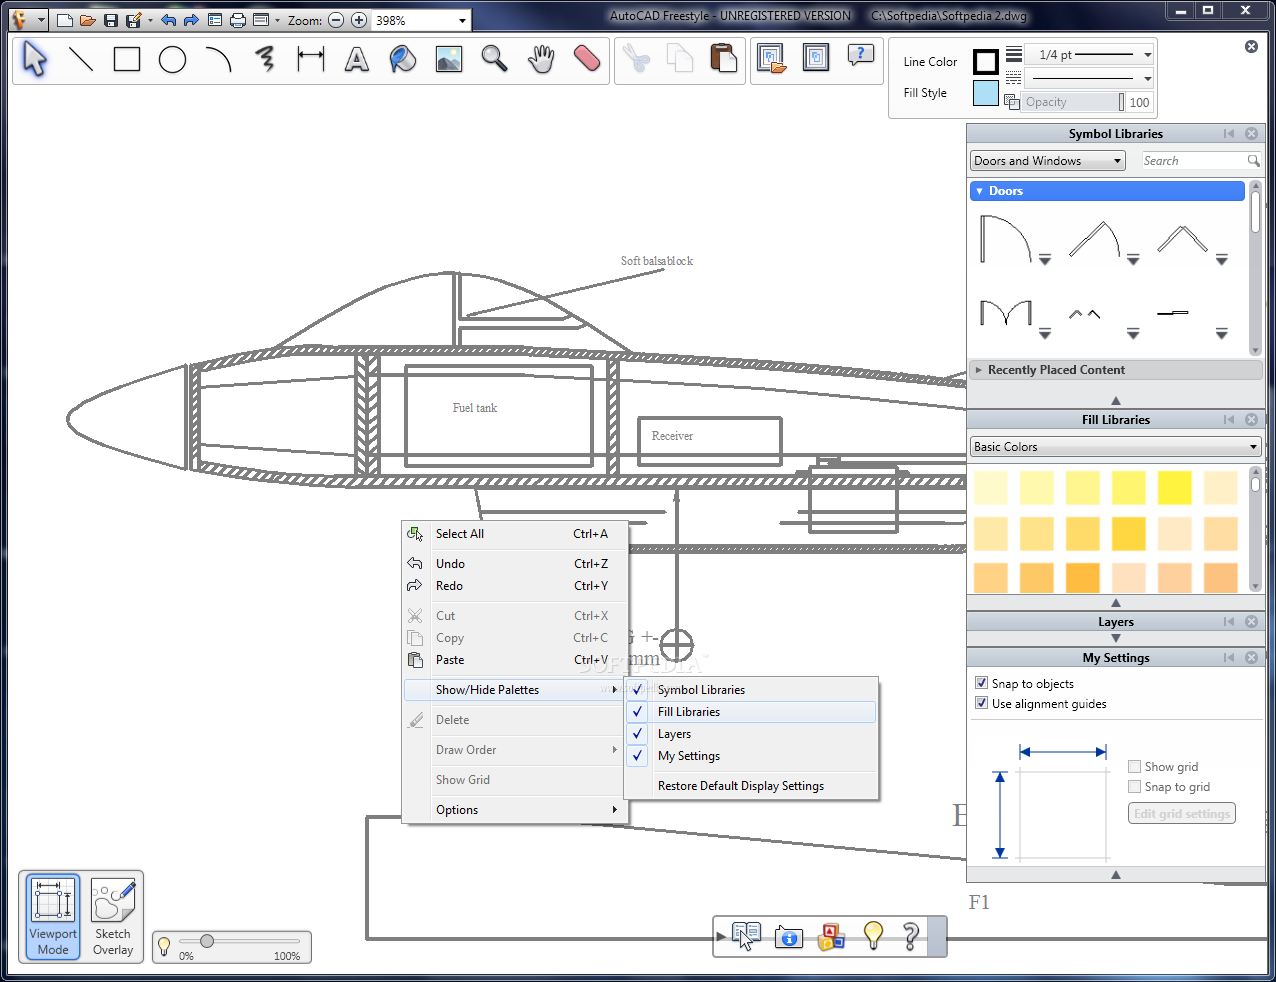 Autocad freestyle build r18.0.0.585 by jamessul